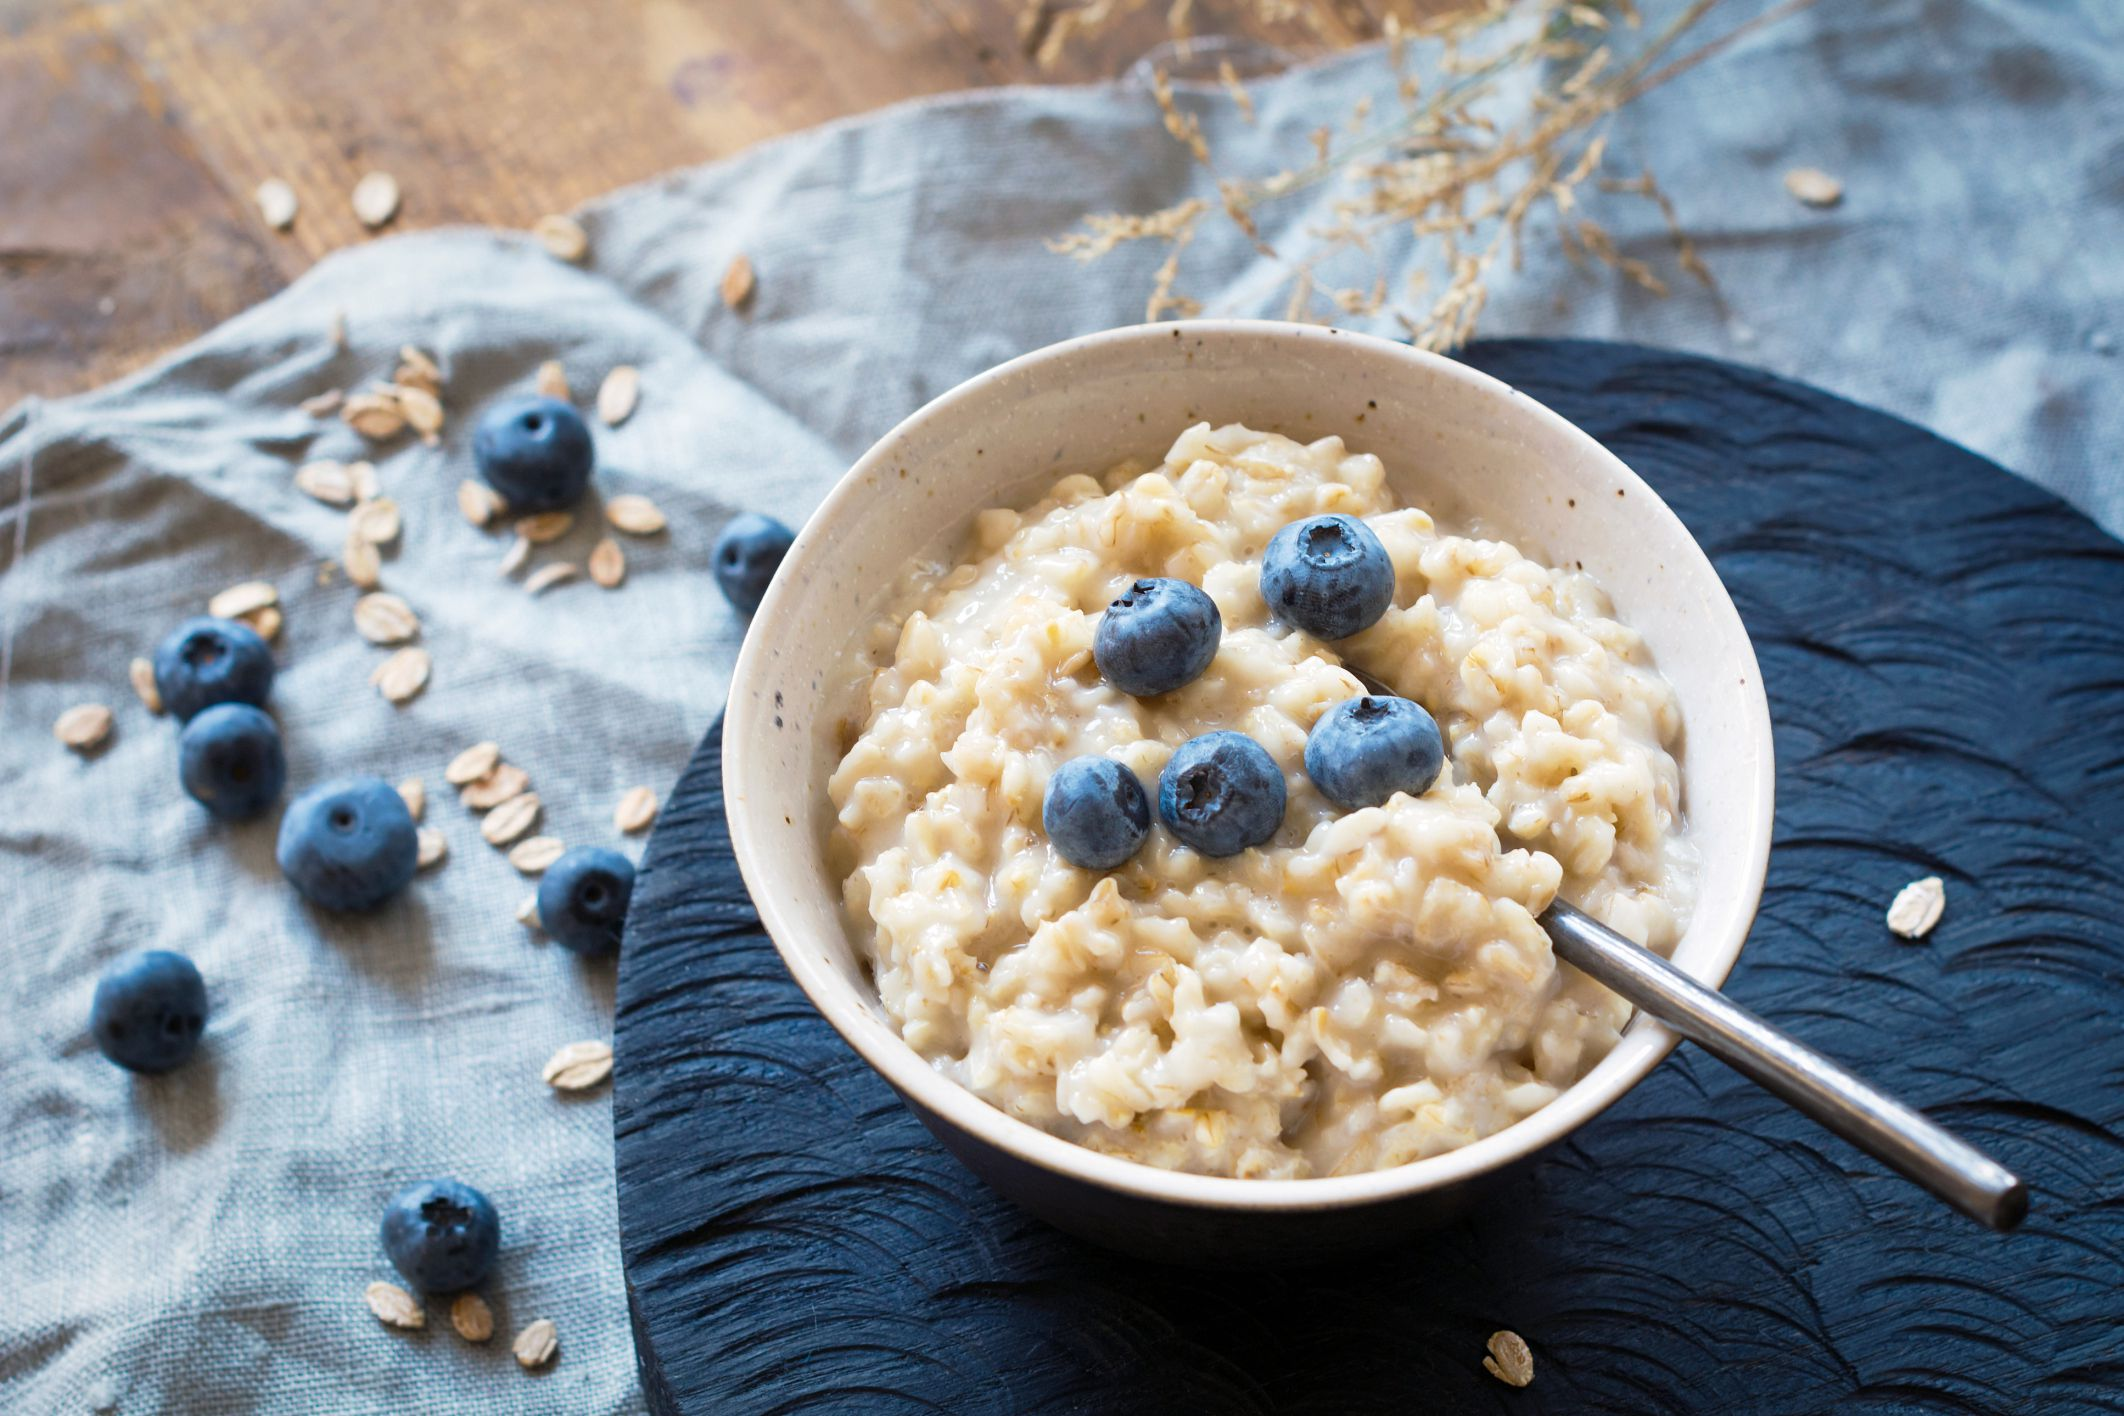 Is Oatmeal Gluten-Free and Can Celiacs Eat Oats?